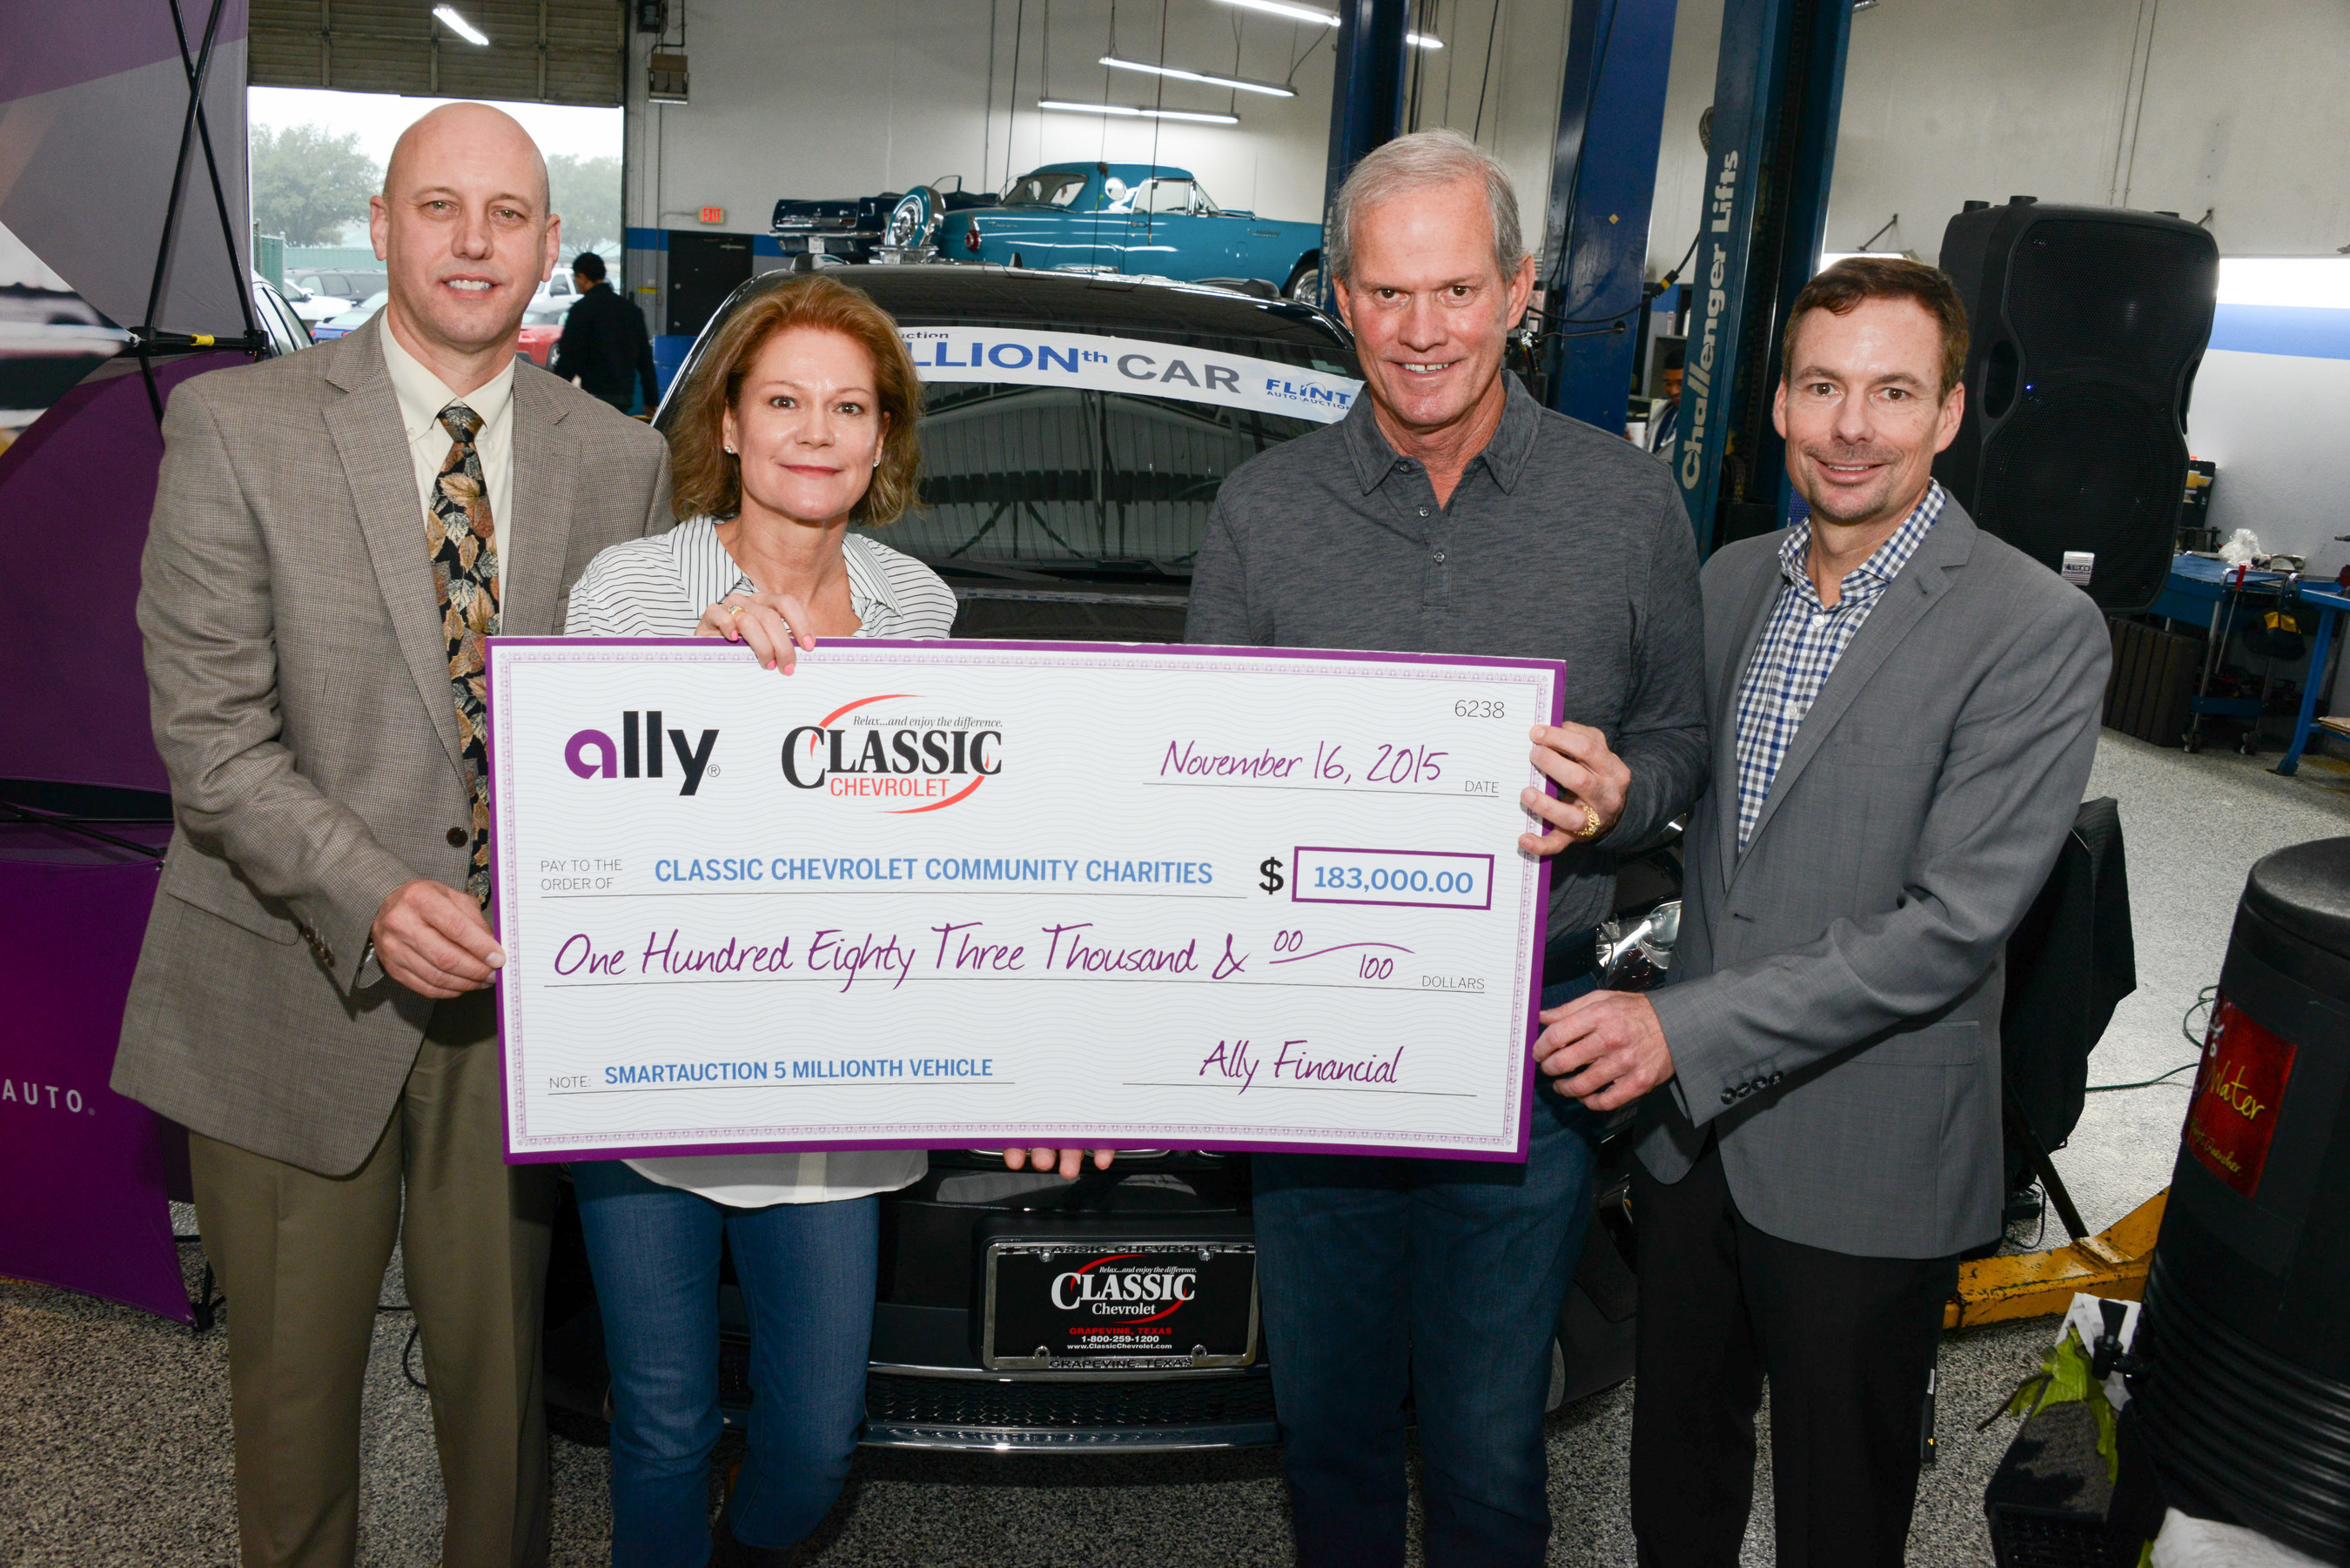 Ally And Classic Chevrolet Make Donation To 10 Local Dallas Charities